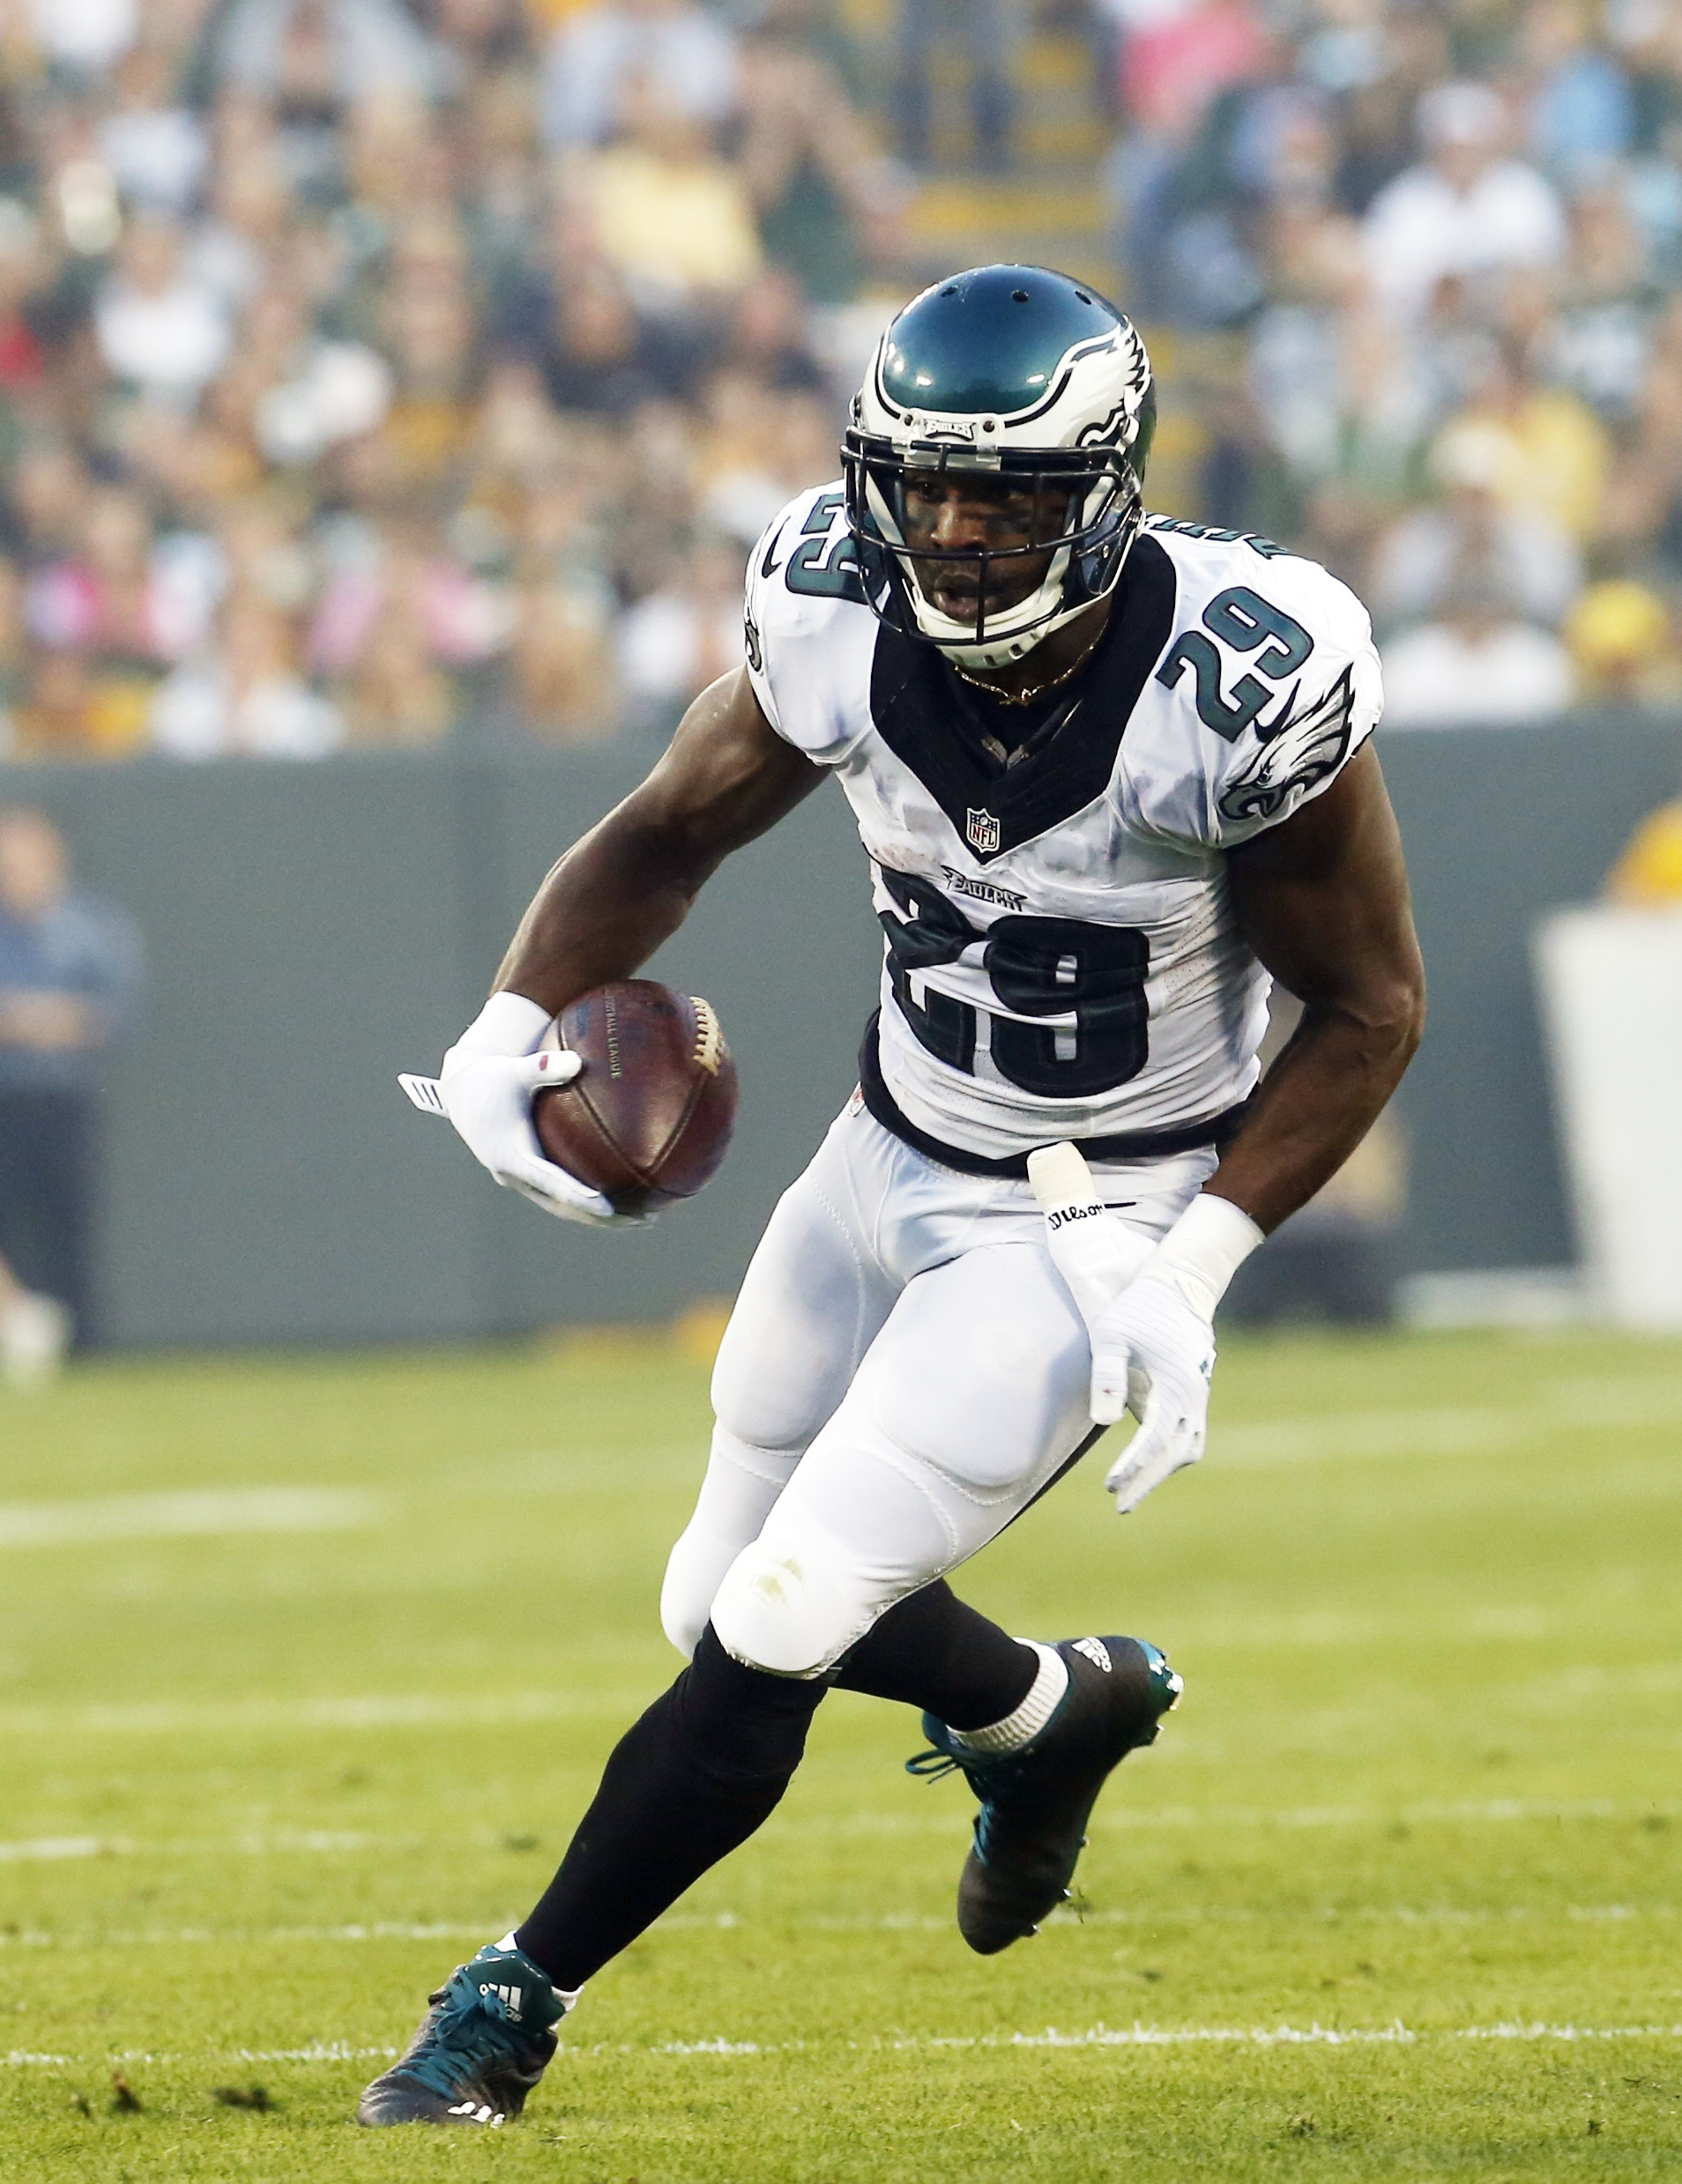 FILE - In this Aug. 29, 2015, file photo, Philadelphia Eagles' DeMarco Murray runs during the first half of an NFL football game against the Green Bay Packers in Green Bay, Wis. Murray's critics say his All-Pro season was a fluke, a result of playing behi